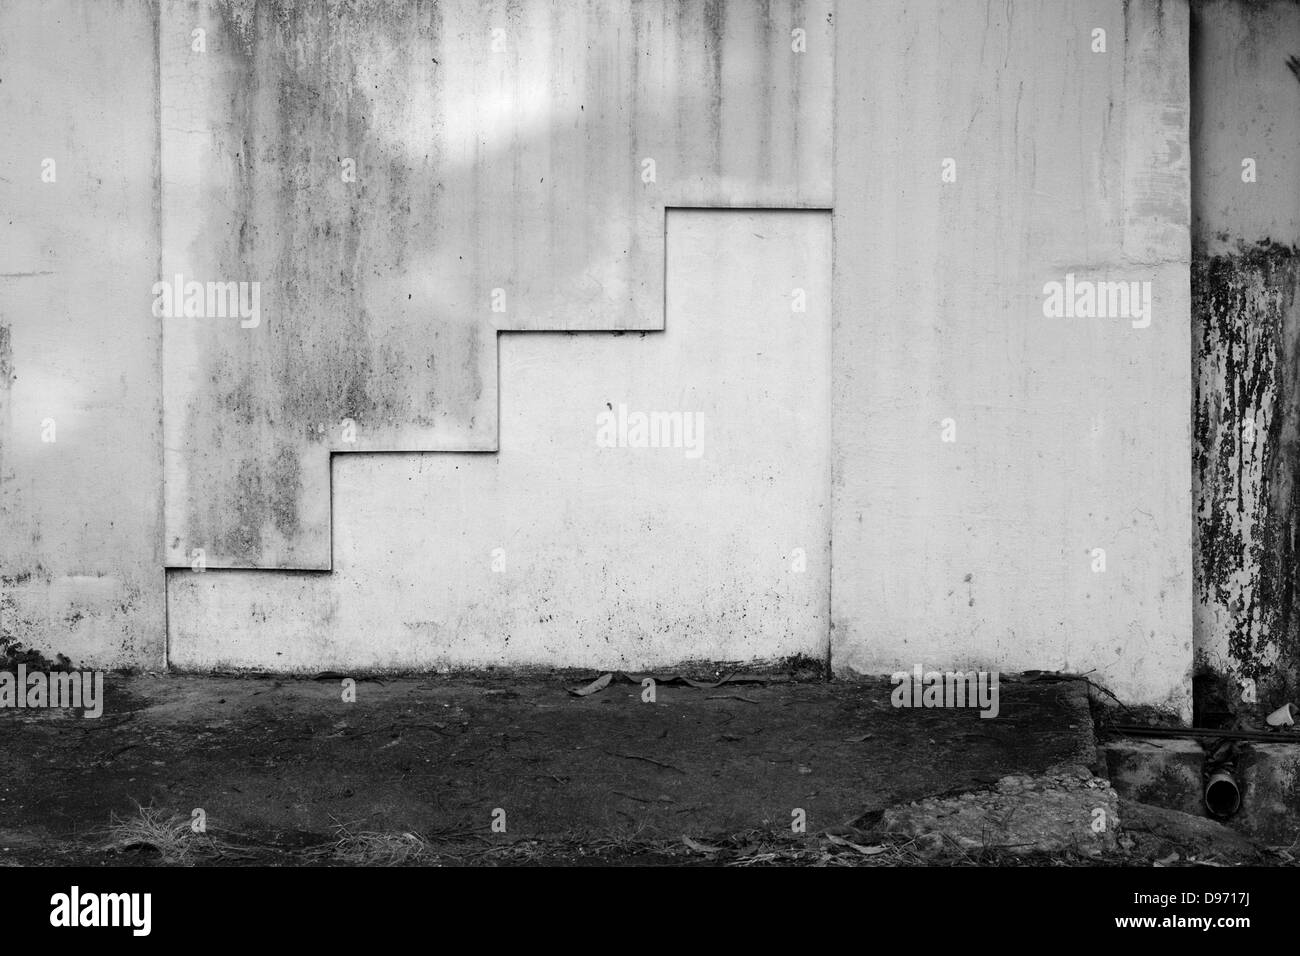 A stair like pattern on a decrepit wall, textures - Stock Image